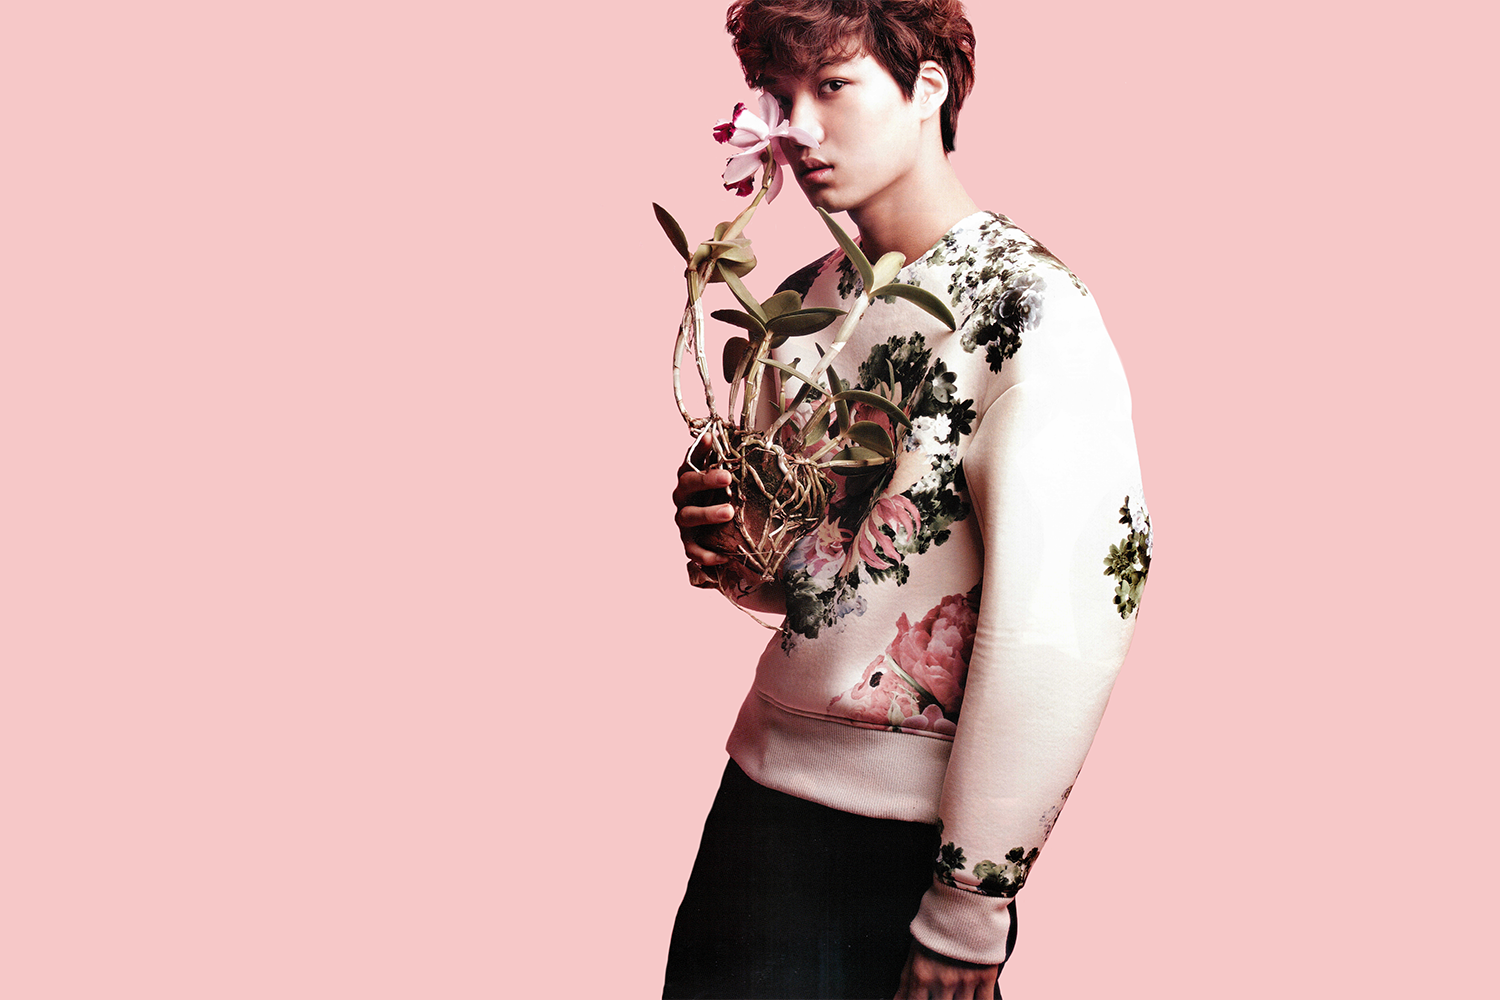 Exo wallpaper and background image 1500x1000 id 551314 - Exo background ...